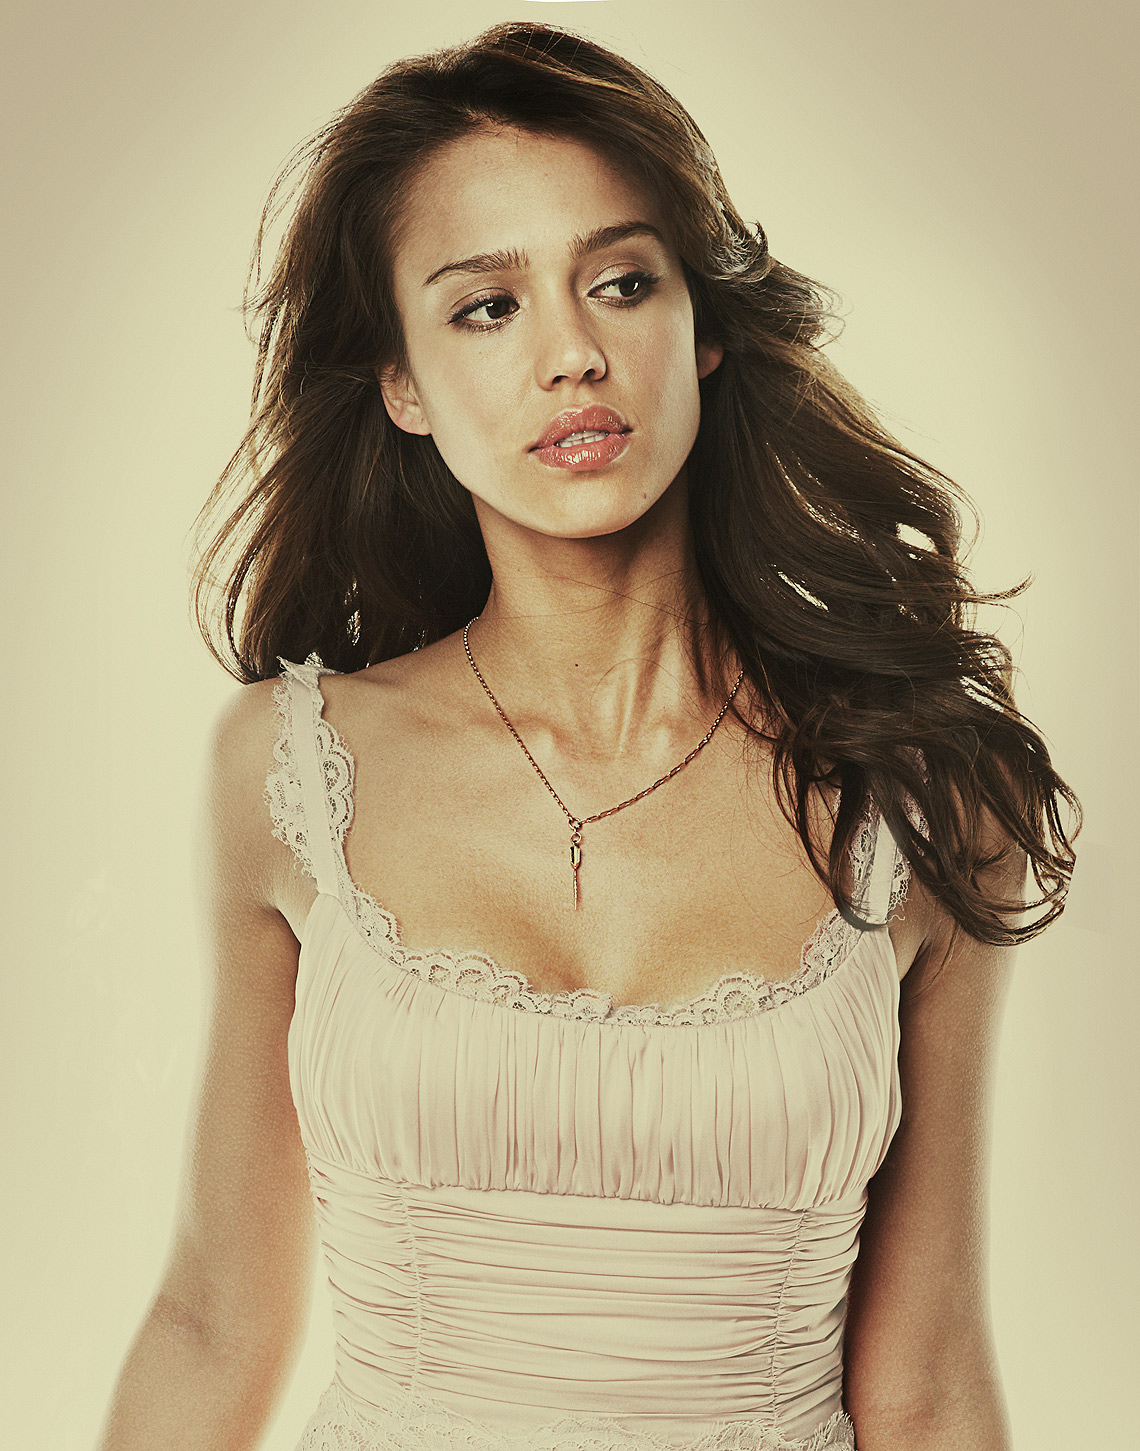 Jessica-Alba-by-Robert-Ascroft-03.jpg